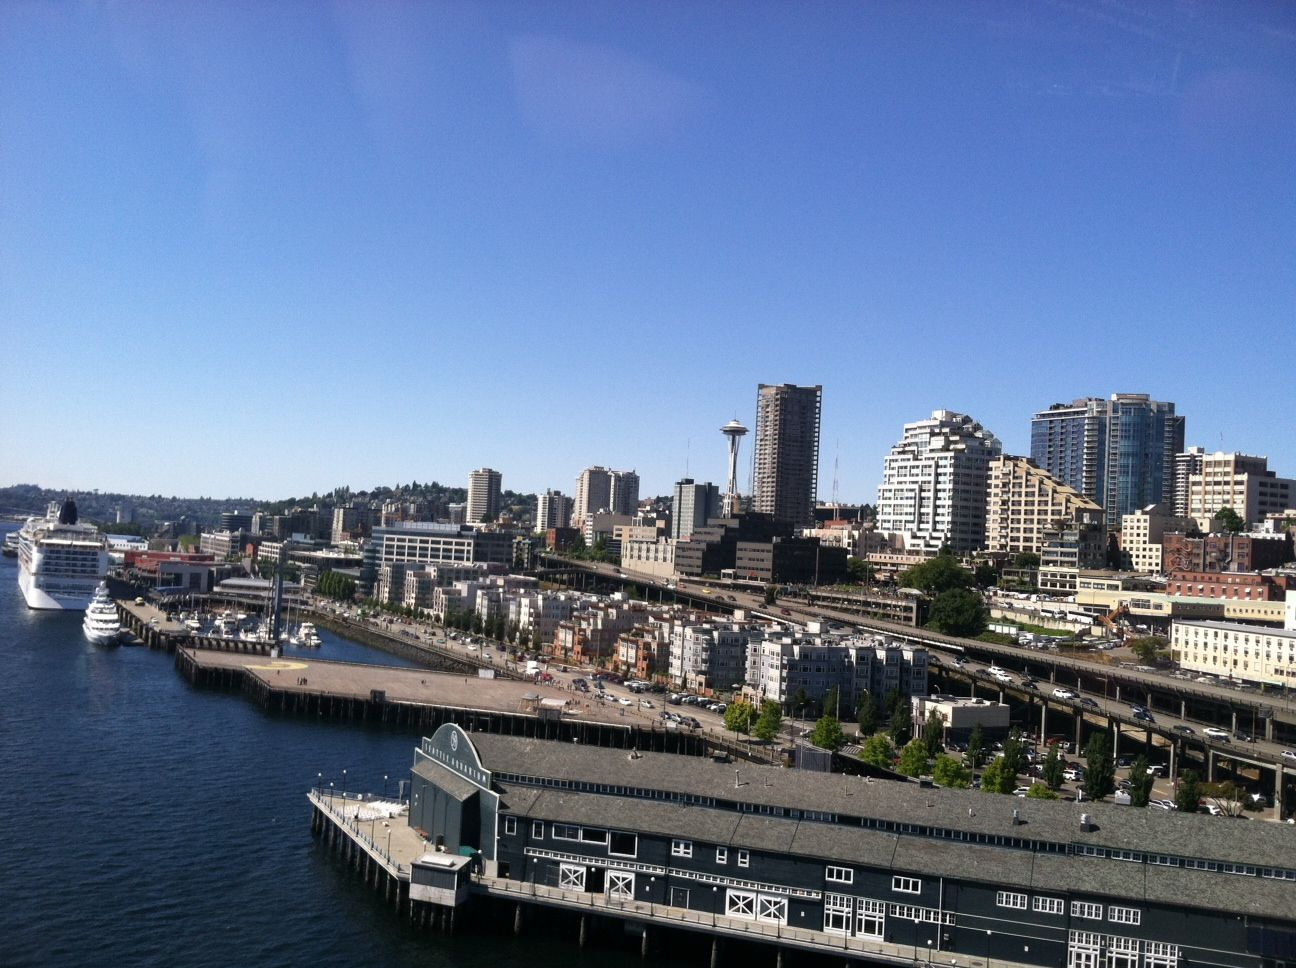 Pin by Hanford Searl Jr. on Seattle (With images